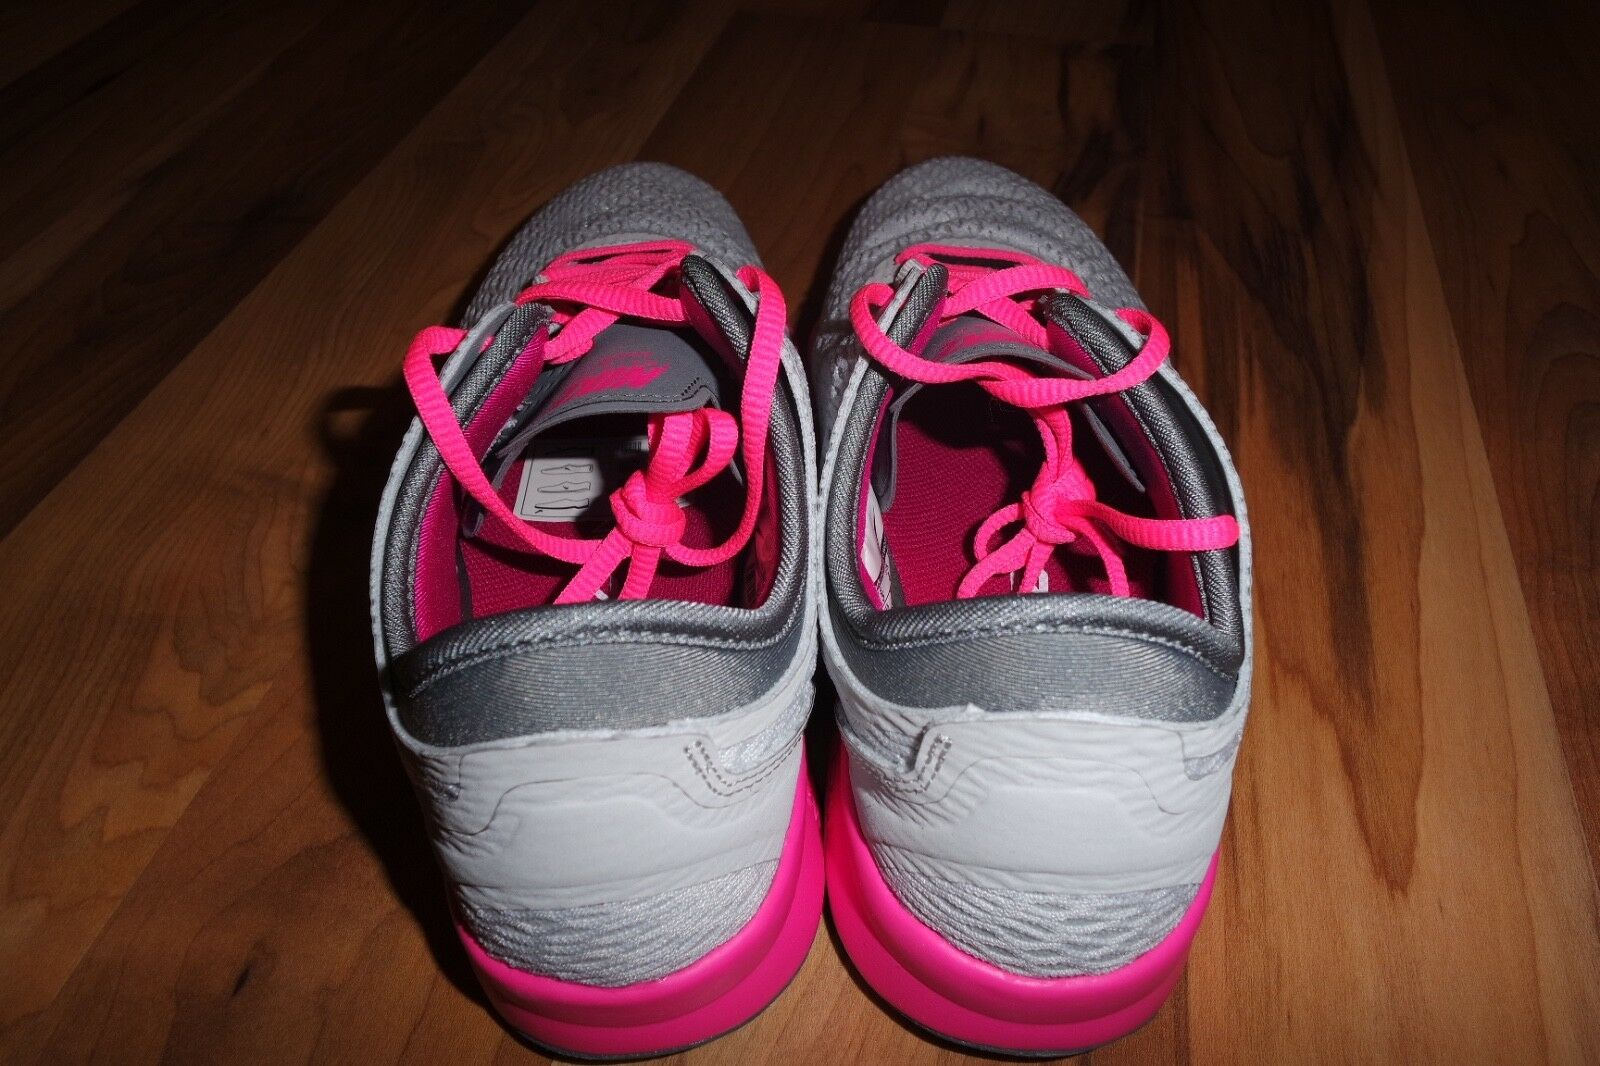 Nike WMNS Zoom Fit PINK Training Running Schuhes Sneakers 704658 37.5 008  6.5 EU 37.5 704658 586b3e